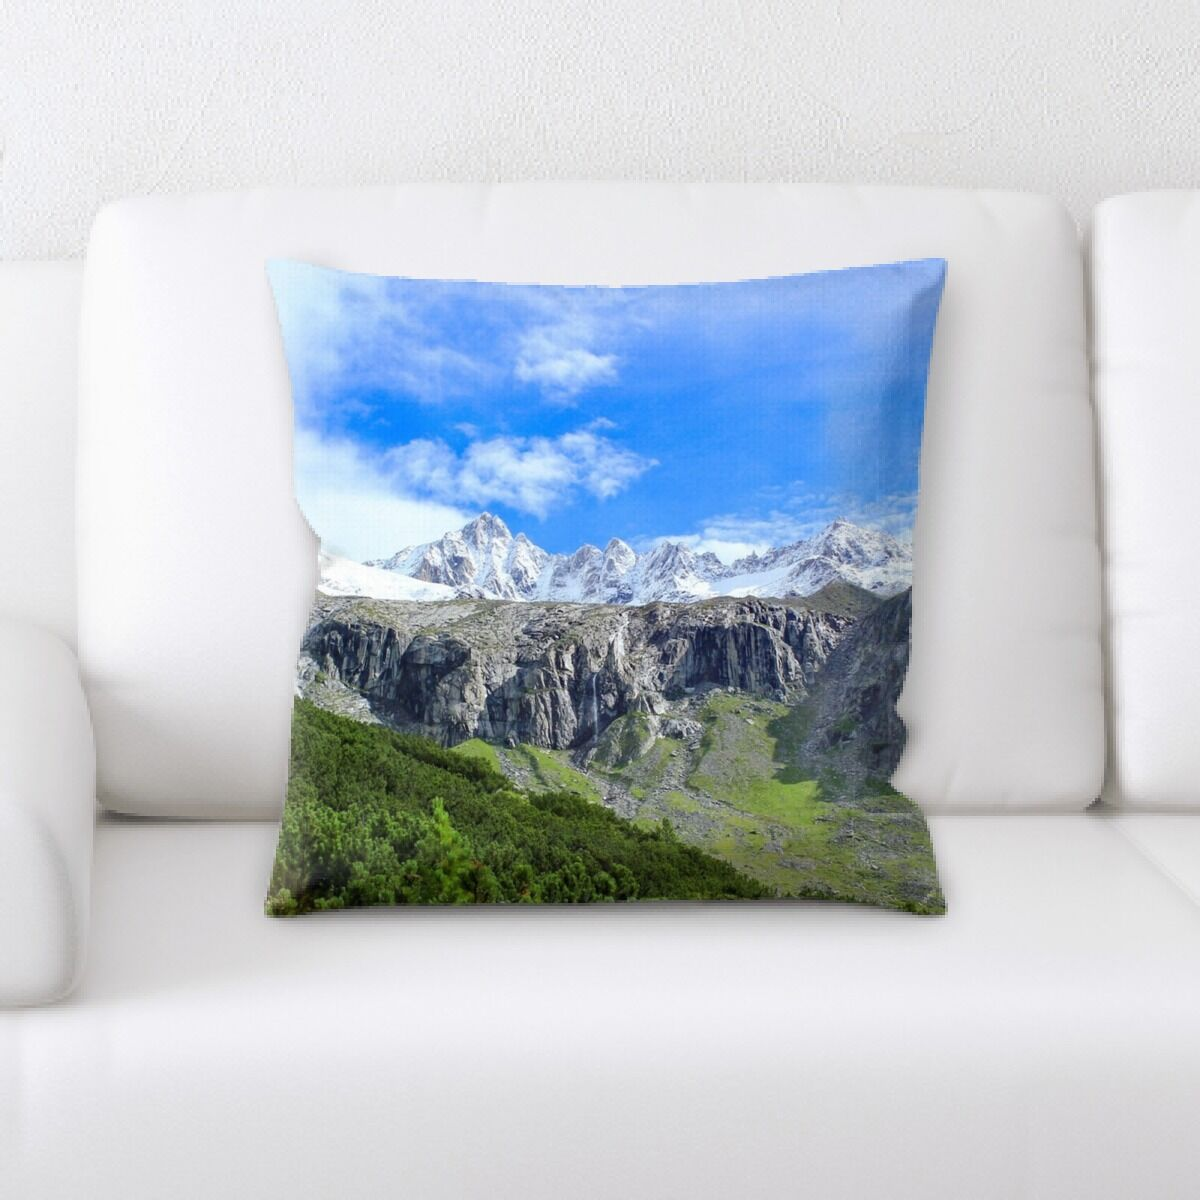 Langdon Mountain and Cliffs (73) Throw Pillow